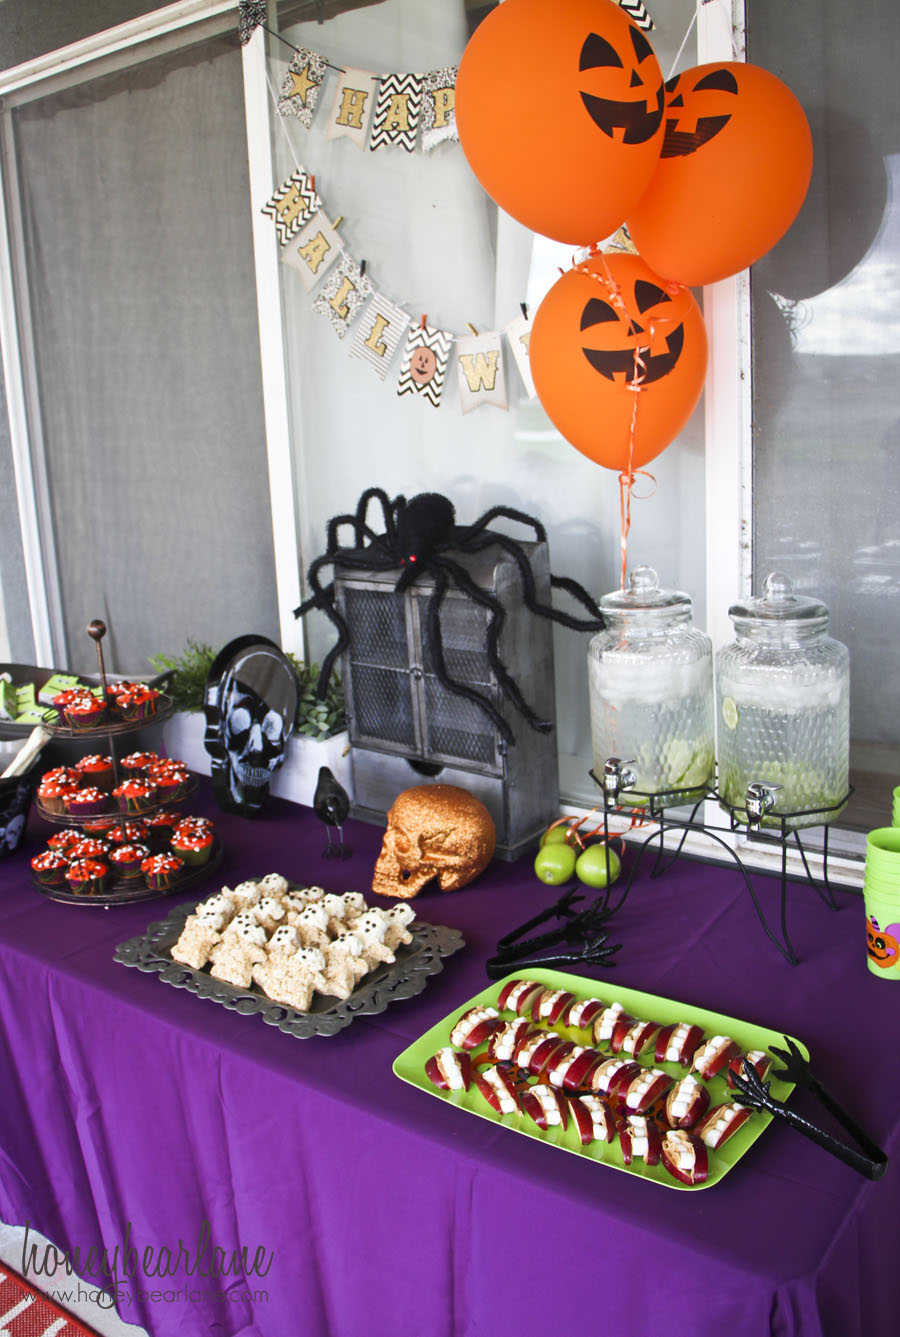 Kids halloween party ideas honeybear lane for How to have a great halloween party